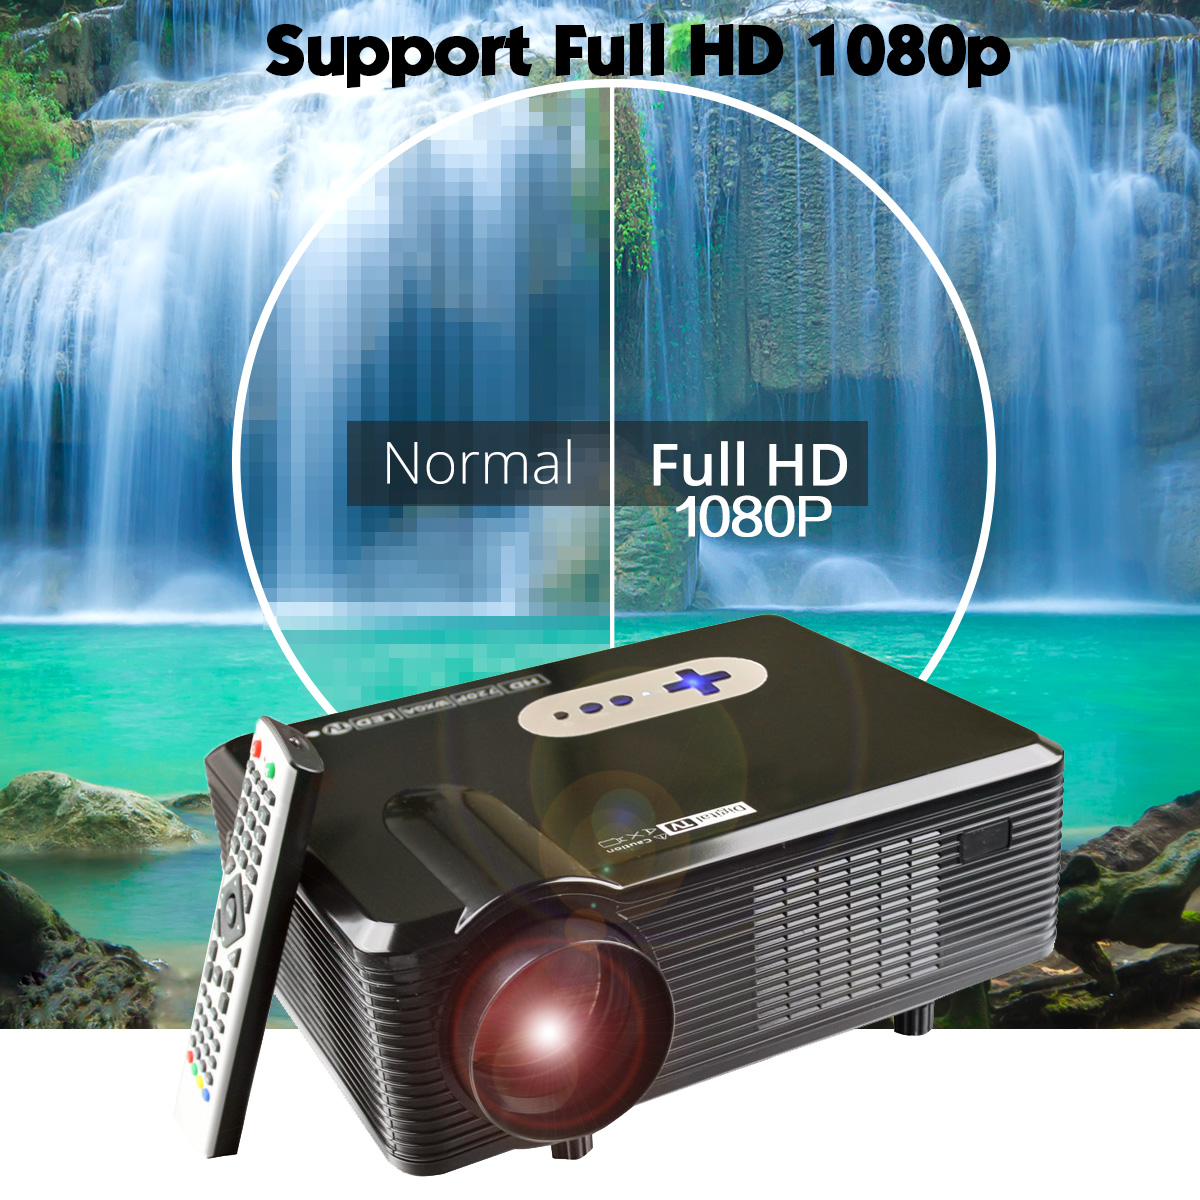 Cl720 3000 Lumens Hd Home Theater Multimedia Lcd Projector: Product Features: